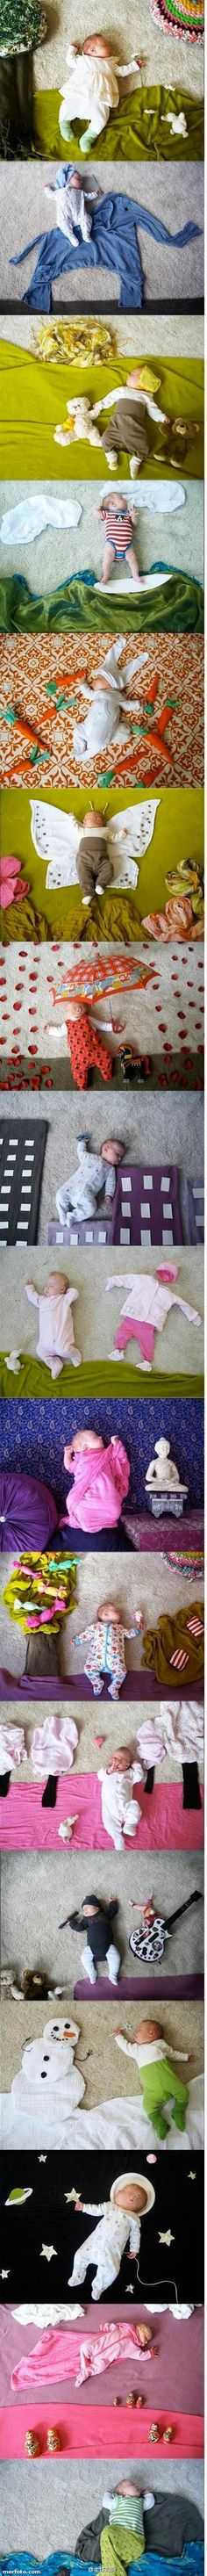 this is both AWESOME and concerning... how long has this baby been on the floor for?!